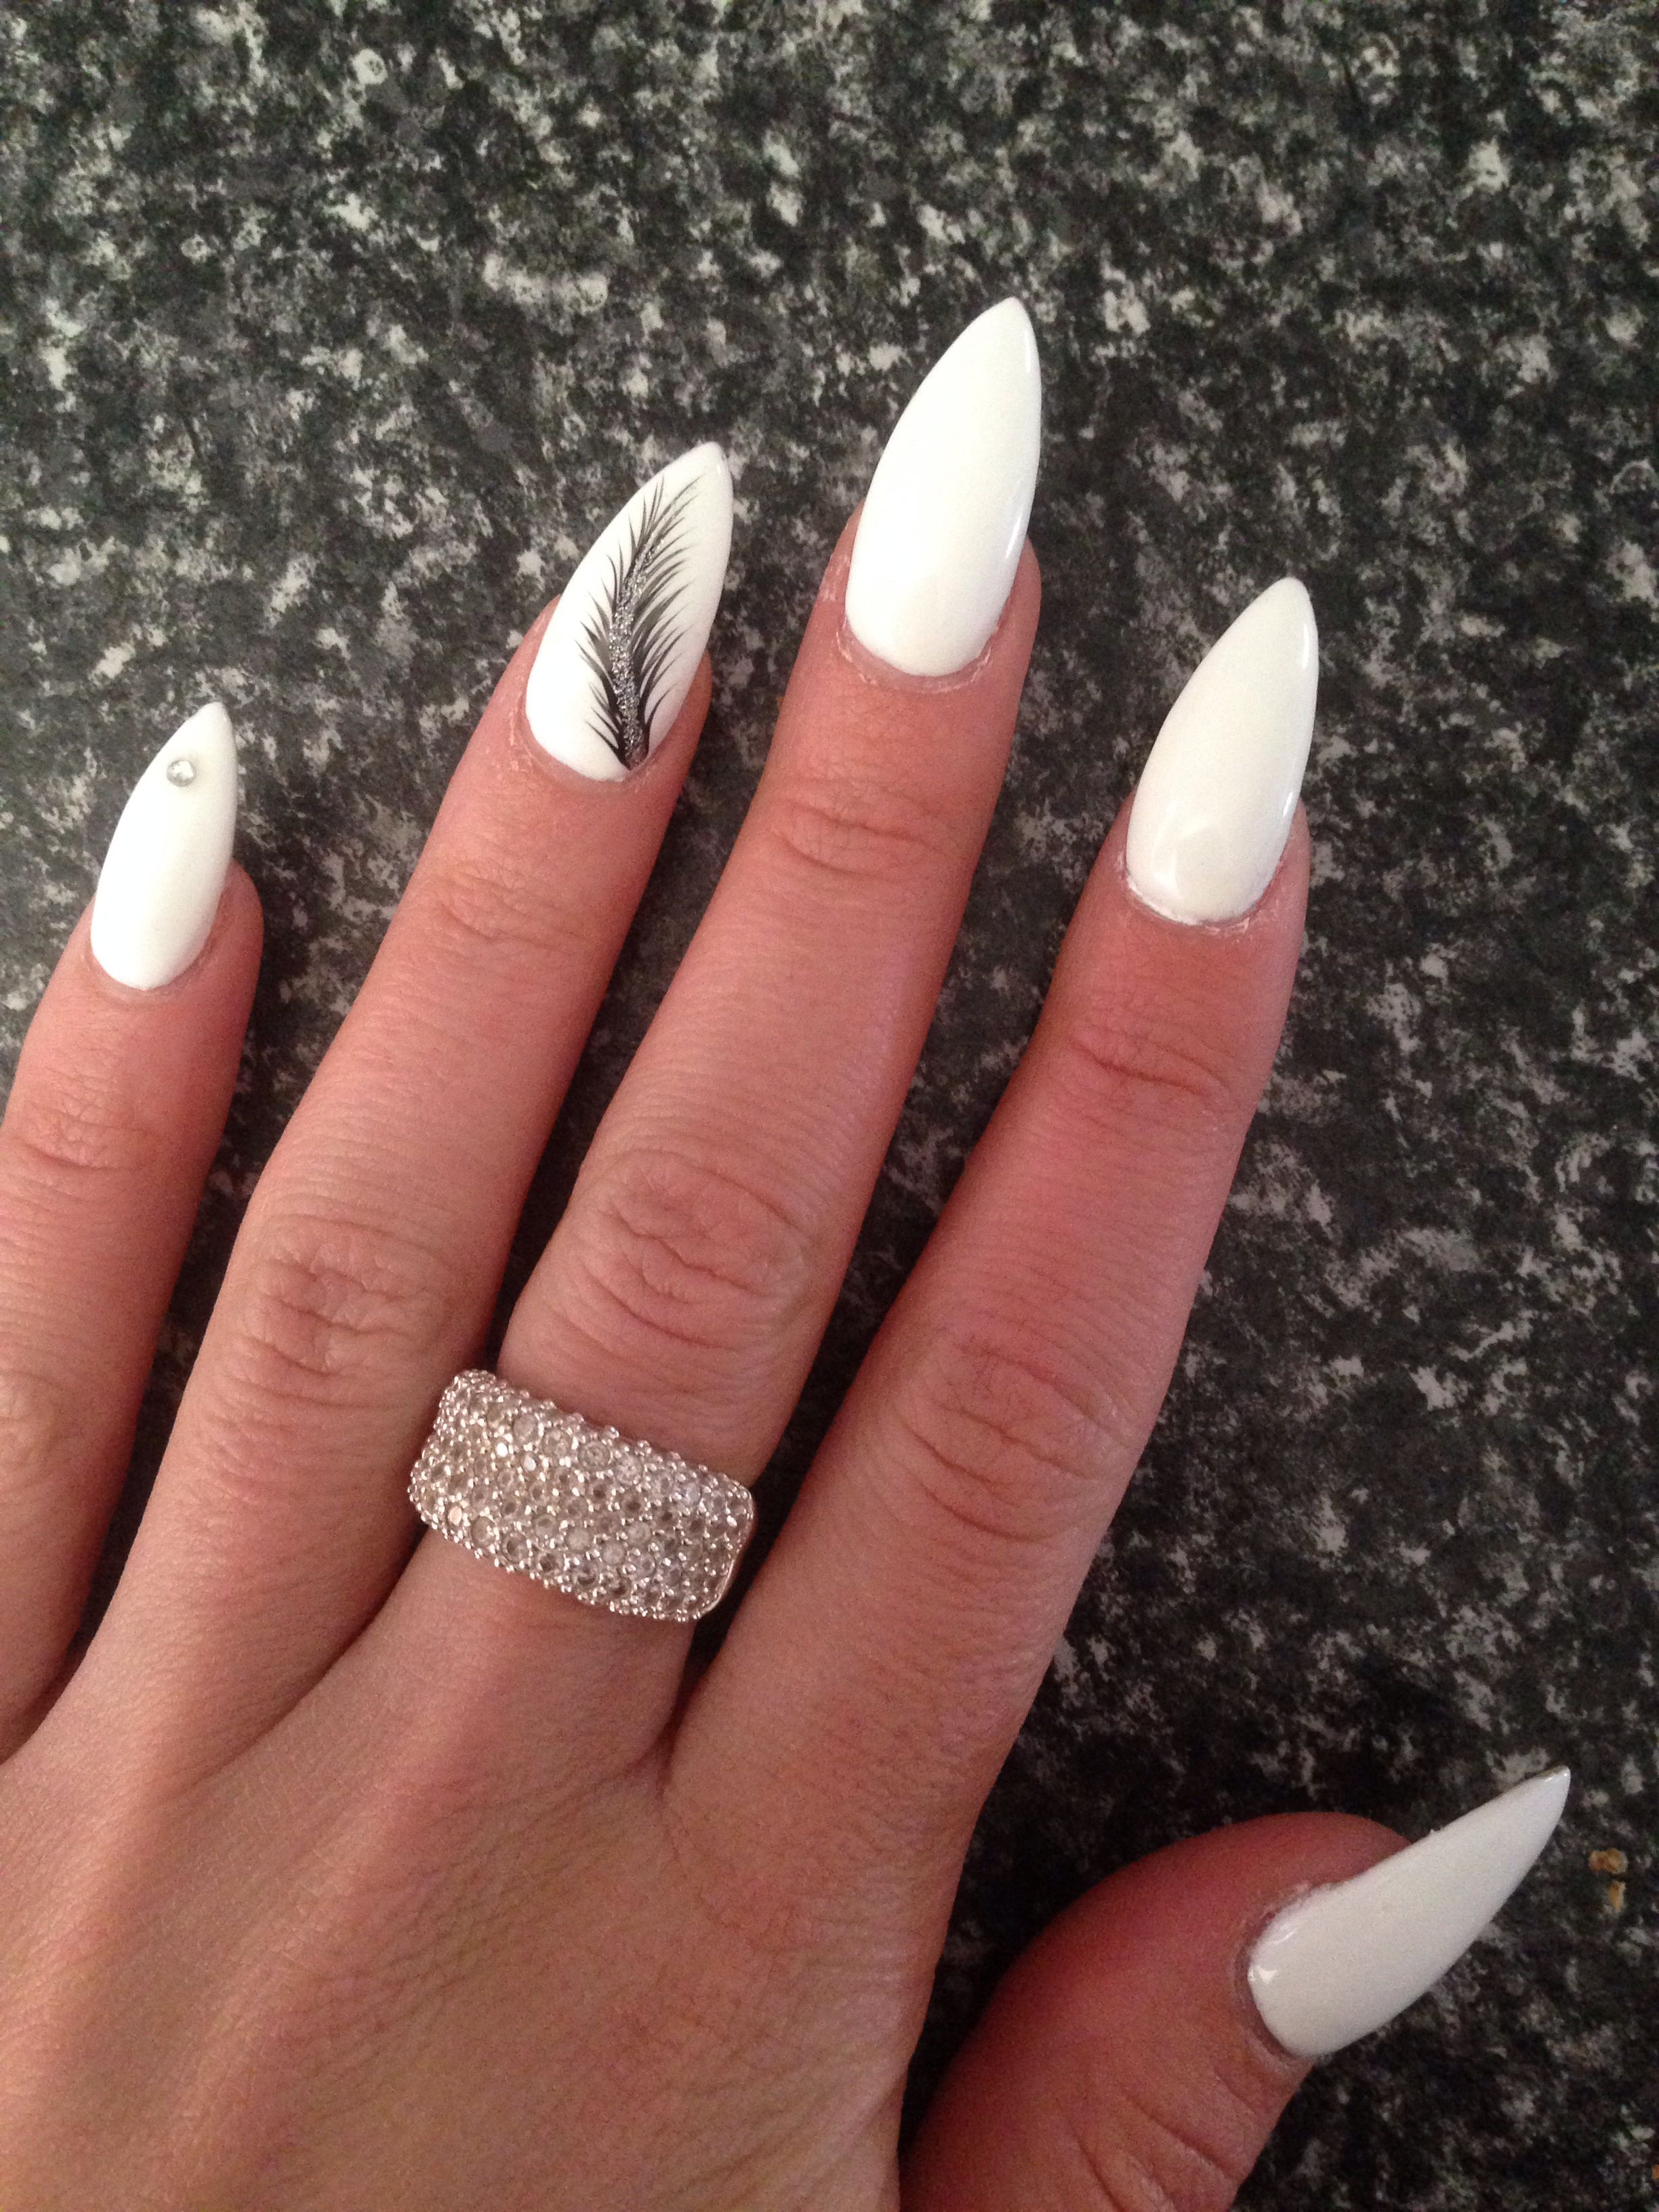 Almond nails white | Nails | Pinterest | Almond nails, Almonds and ...